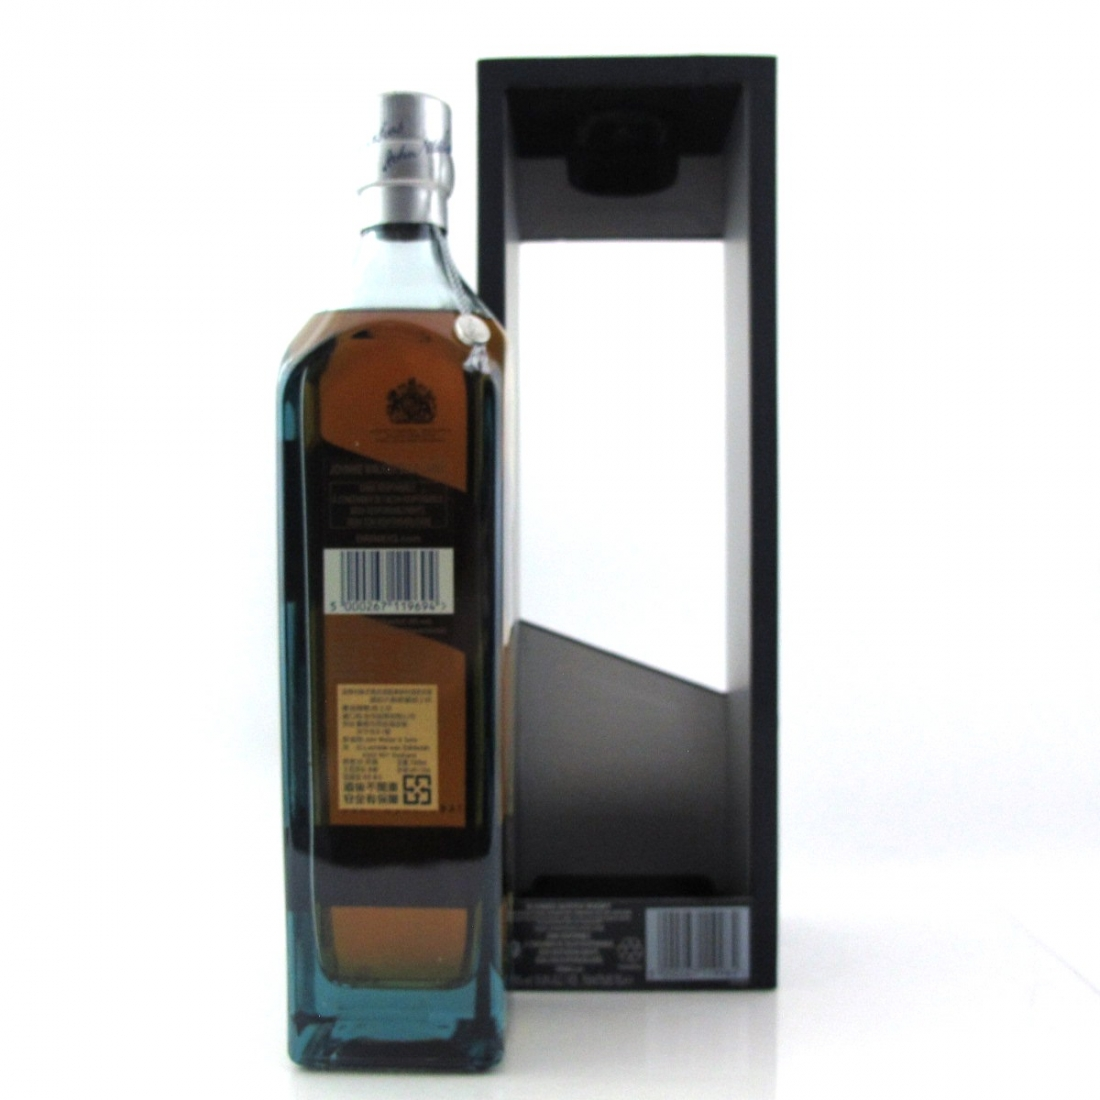 Johnnie Walker Blue Label Porsche Design Studio